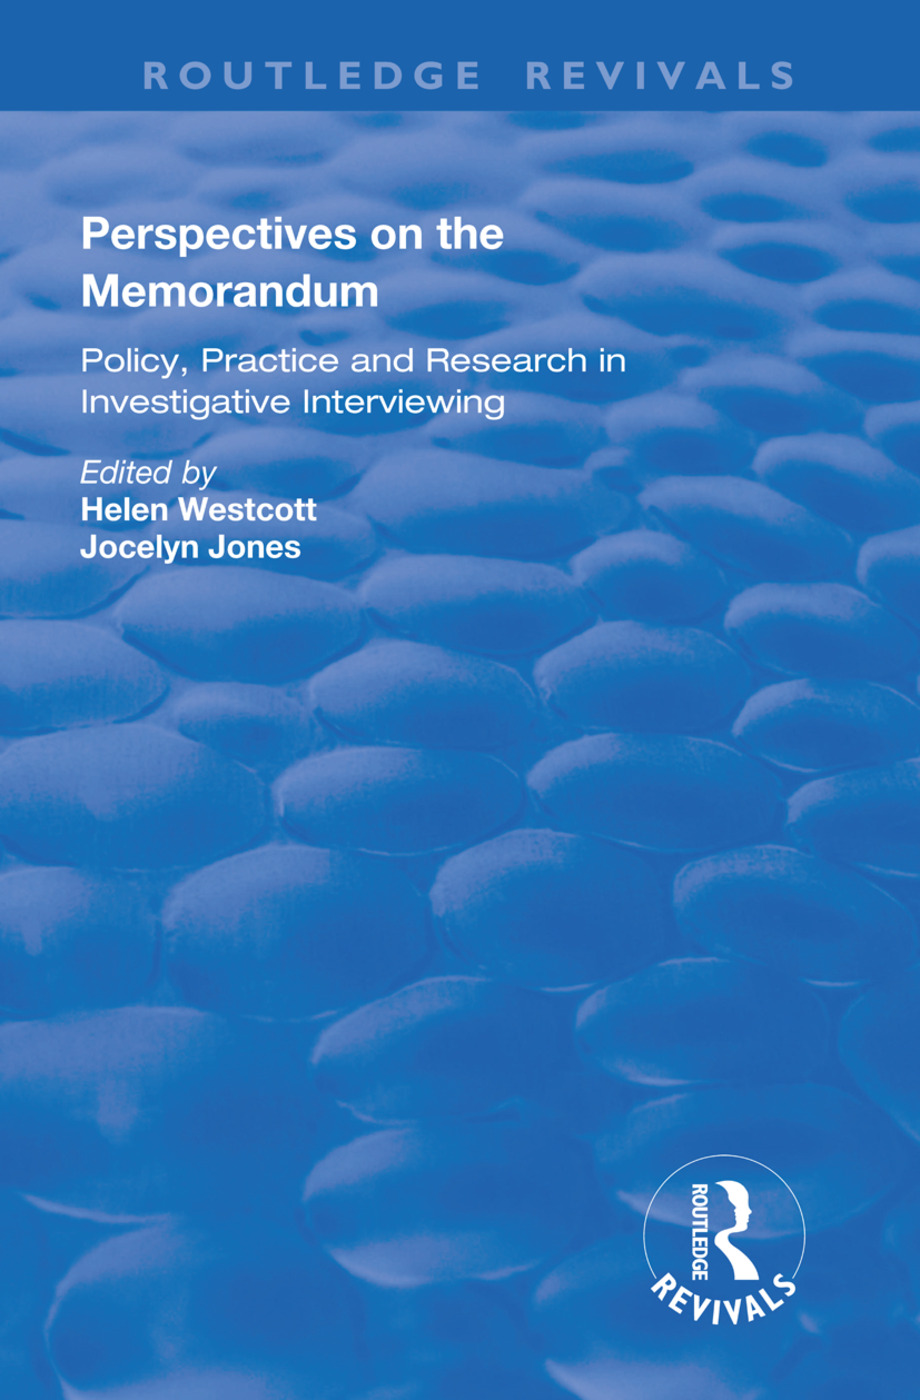 Perspectives on the Memorandum